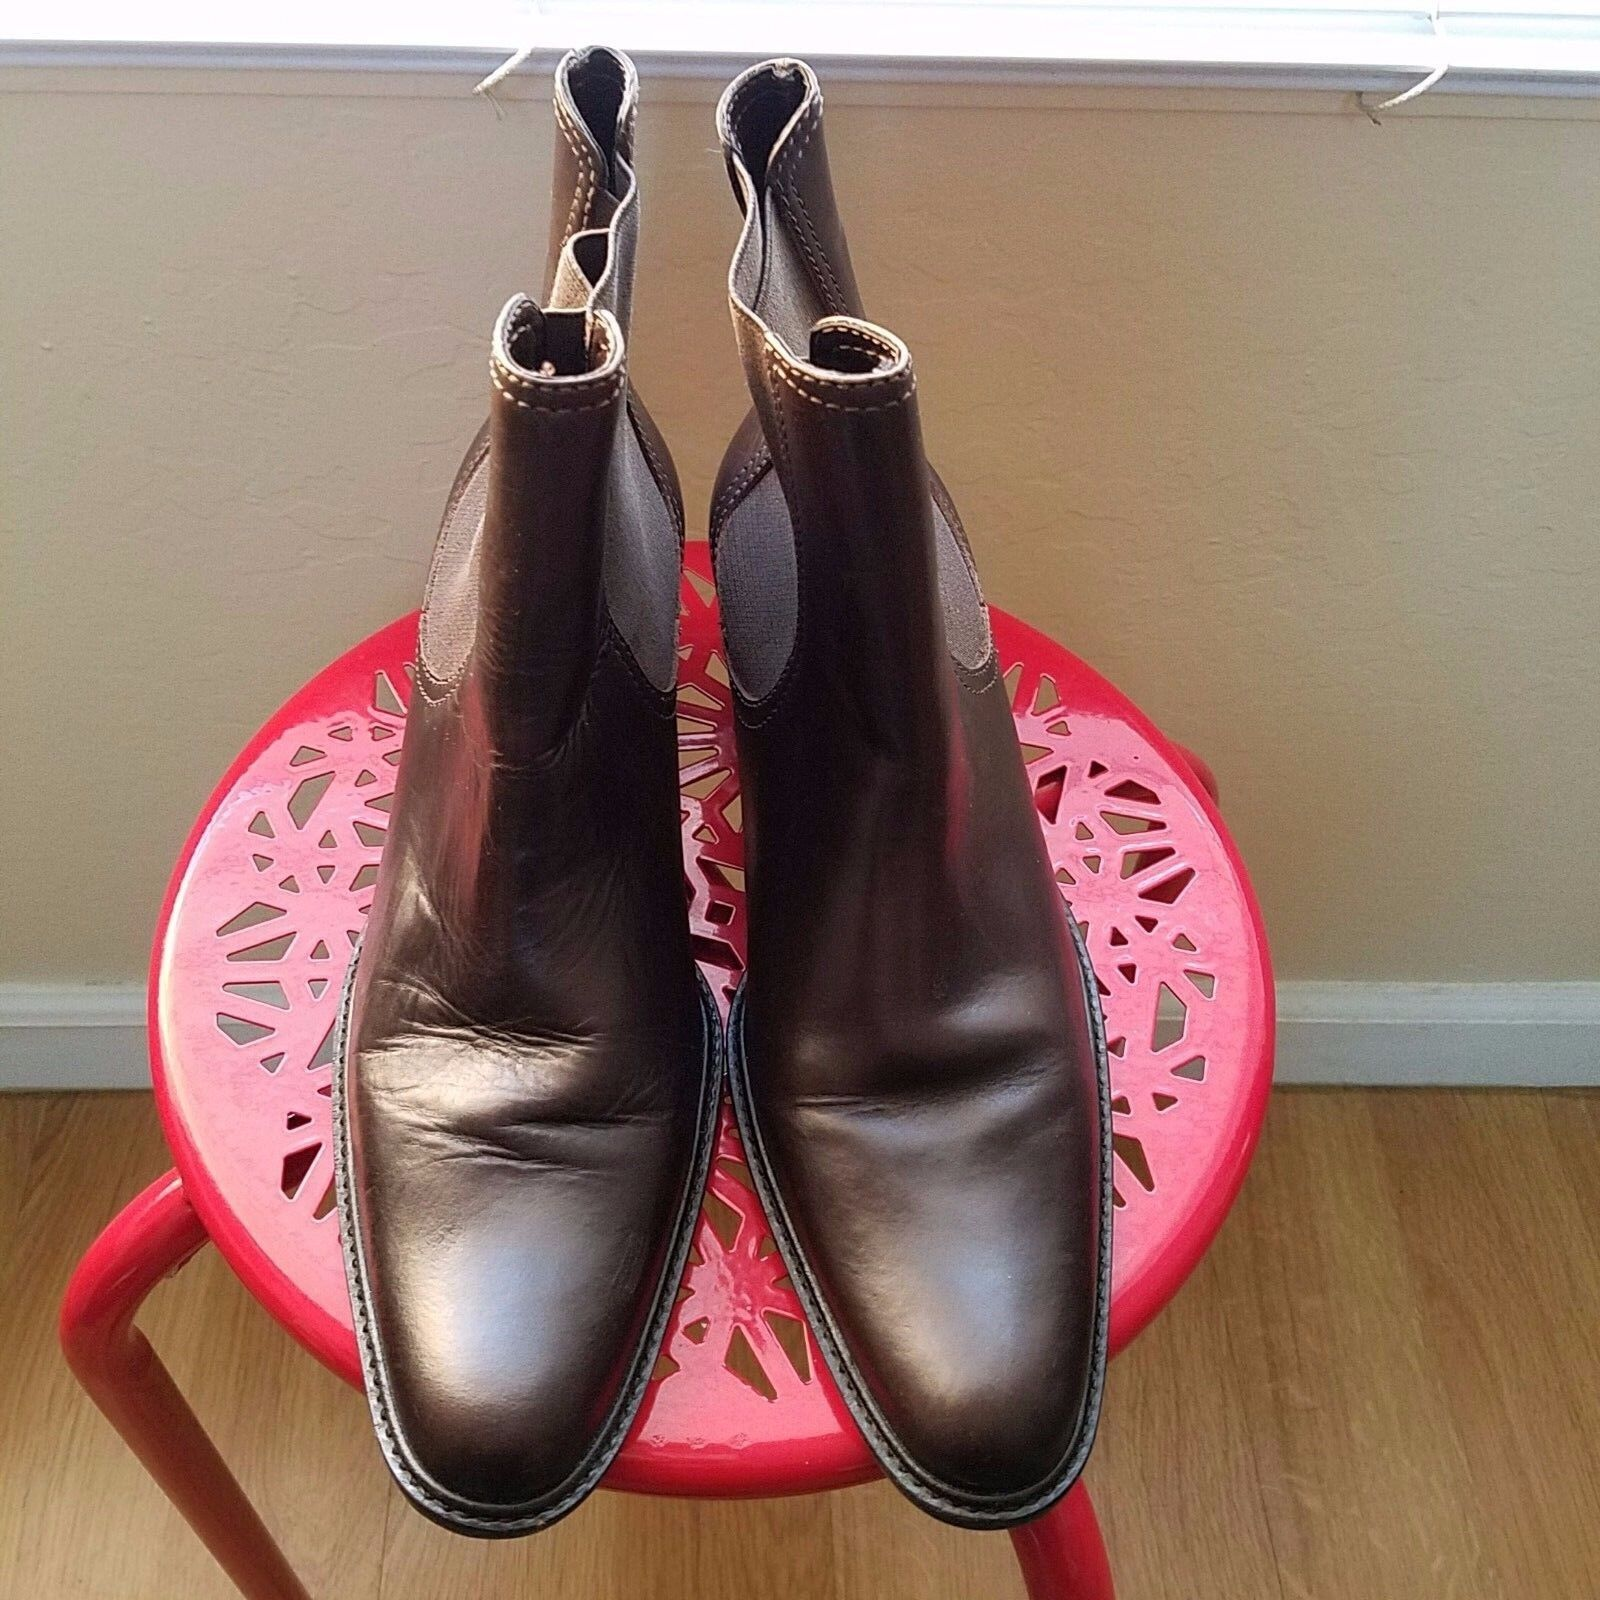 Women's Brown Leather Boots Booties Size 8